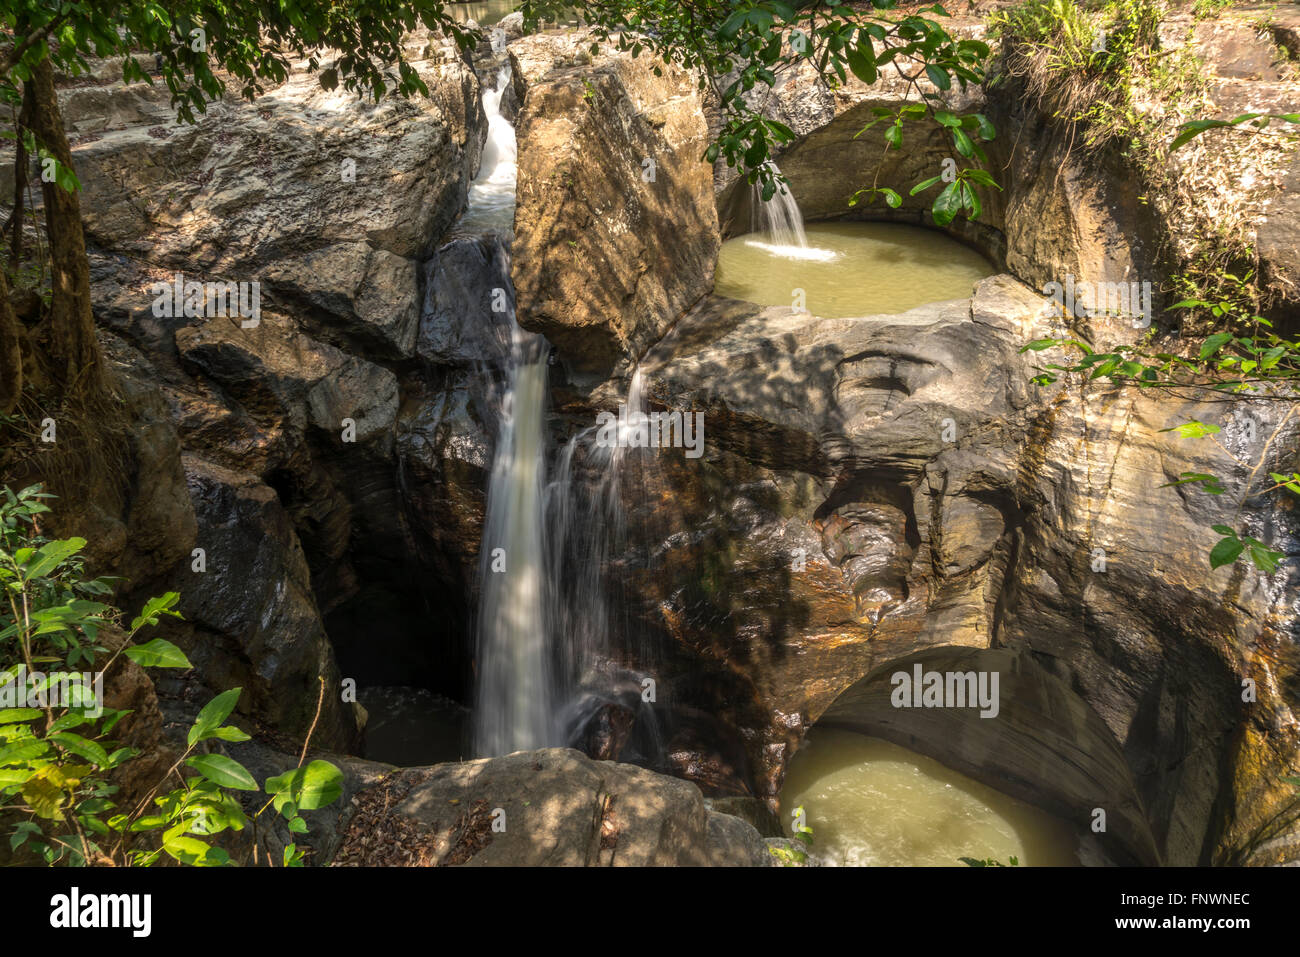 Cunca Wulang Canyon and waterfall near Labuan Bajo, Flores, Indonesia, Asia - Stock Image